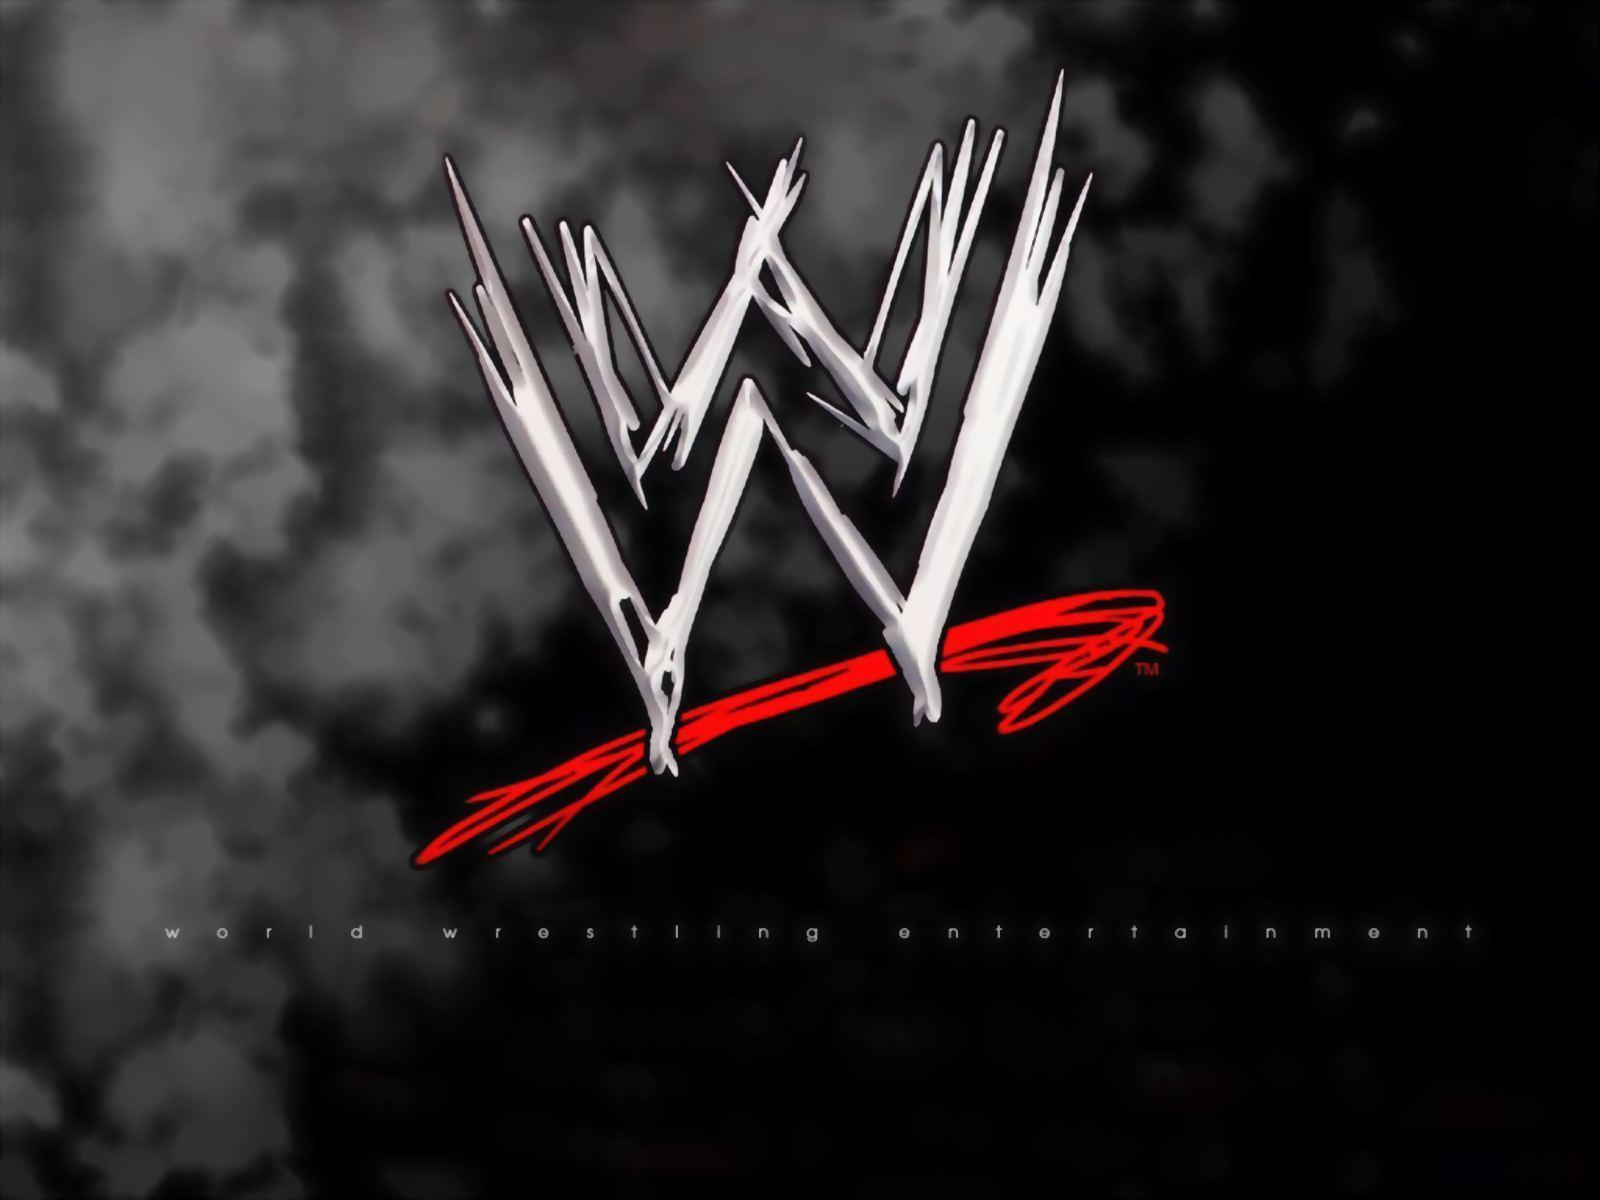 Wwe logo download clipart svg free stock WWE Logo Wallpapers 2017 - Wallpaper Cave svg free stock